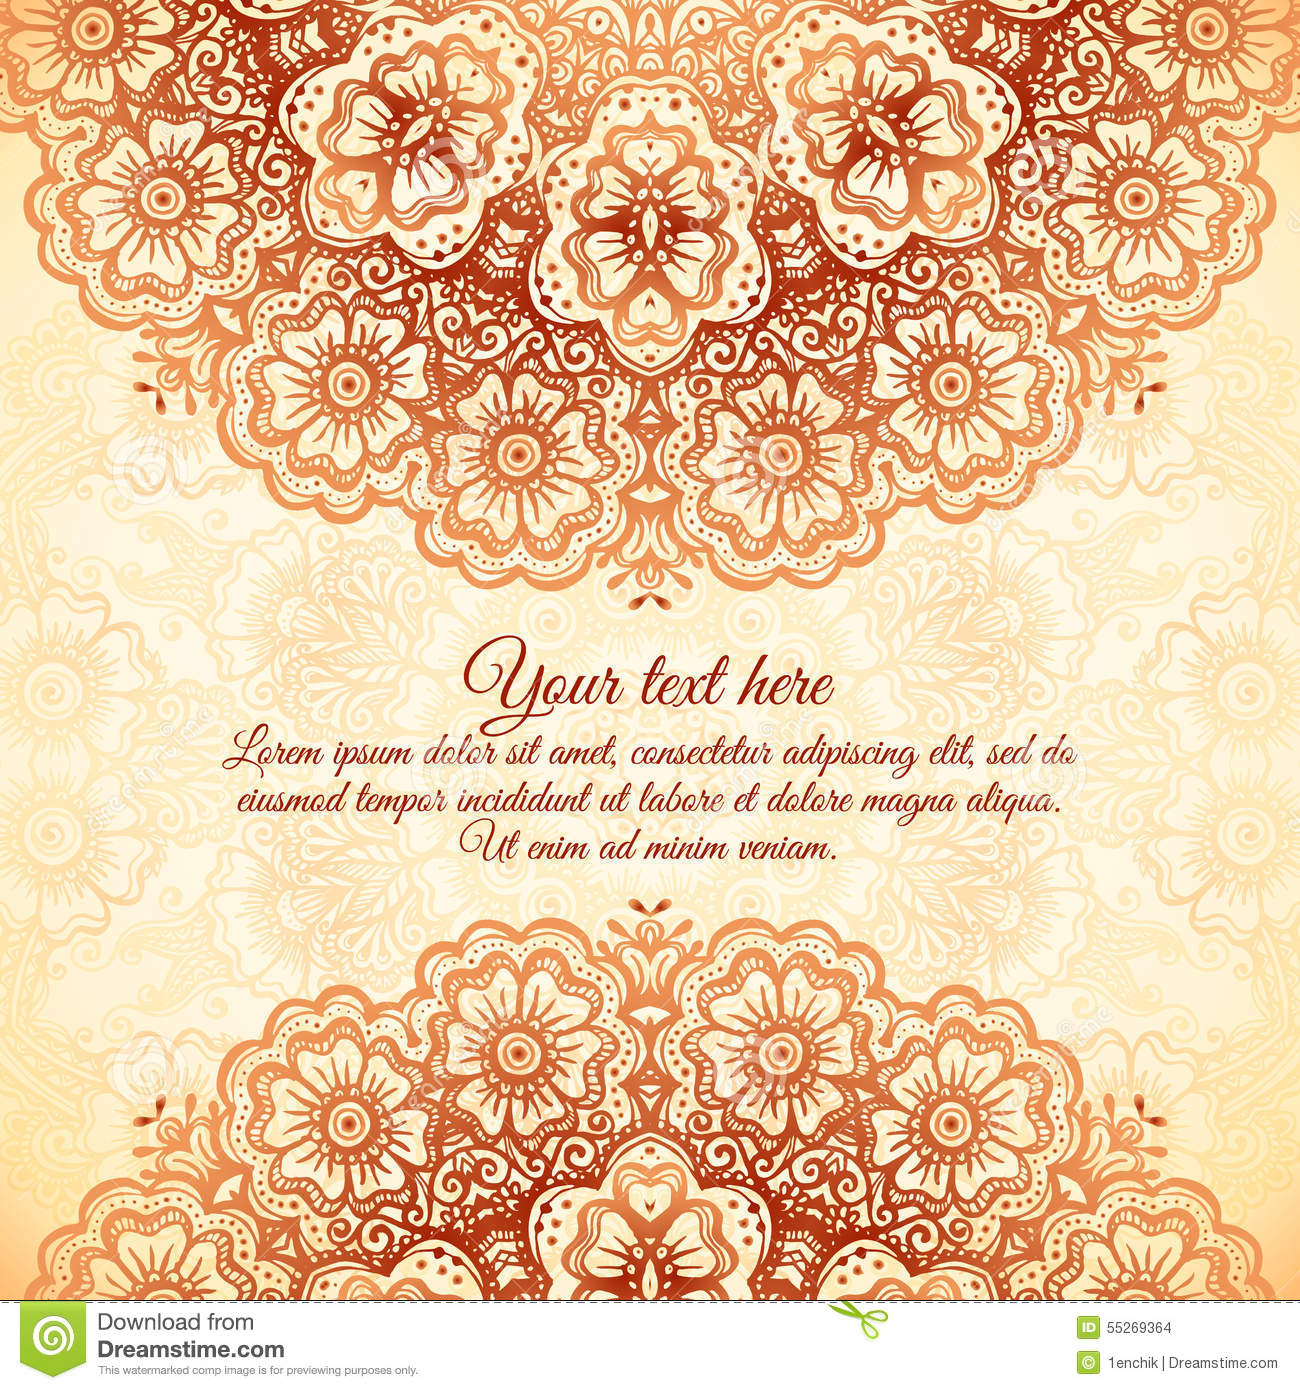 Ornate vintage vector background in mehndi style royalty free stock - Royalty Free Vector Download Vintage Background In Indian Mehndi Style Stock